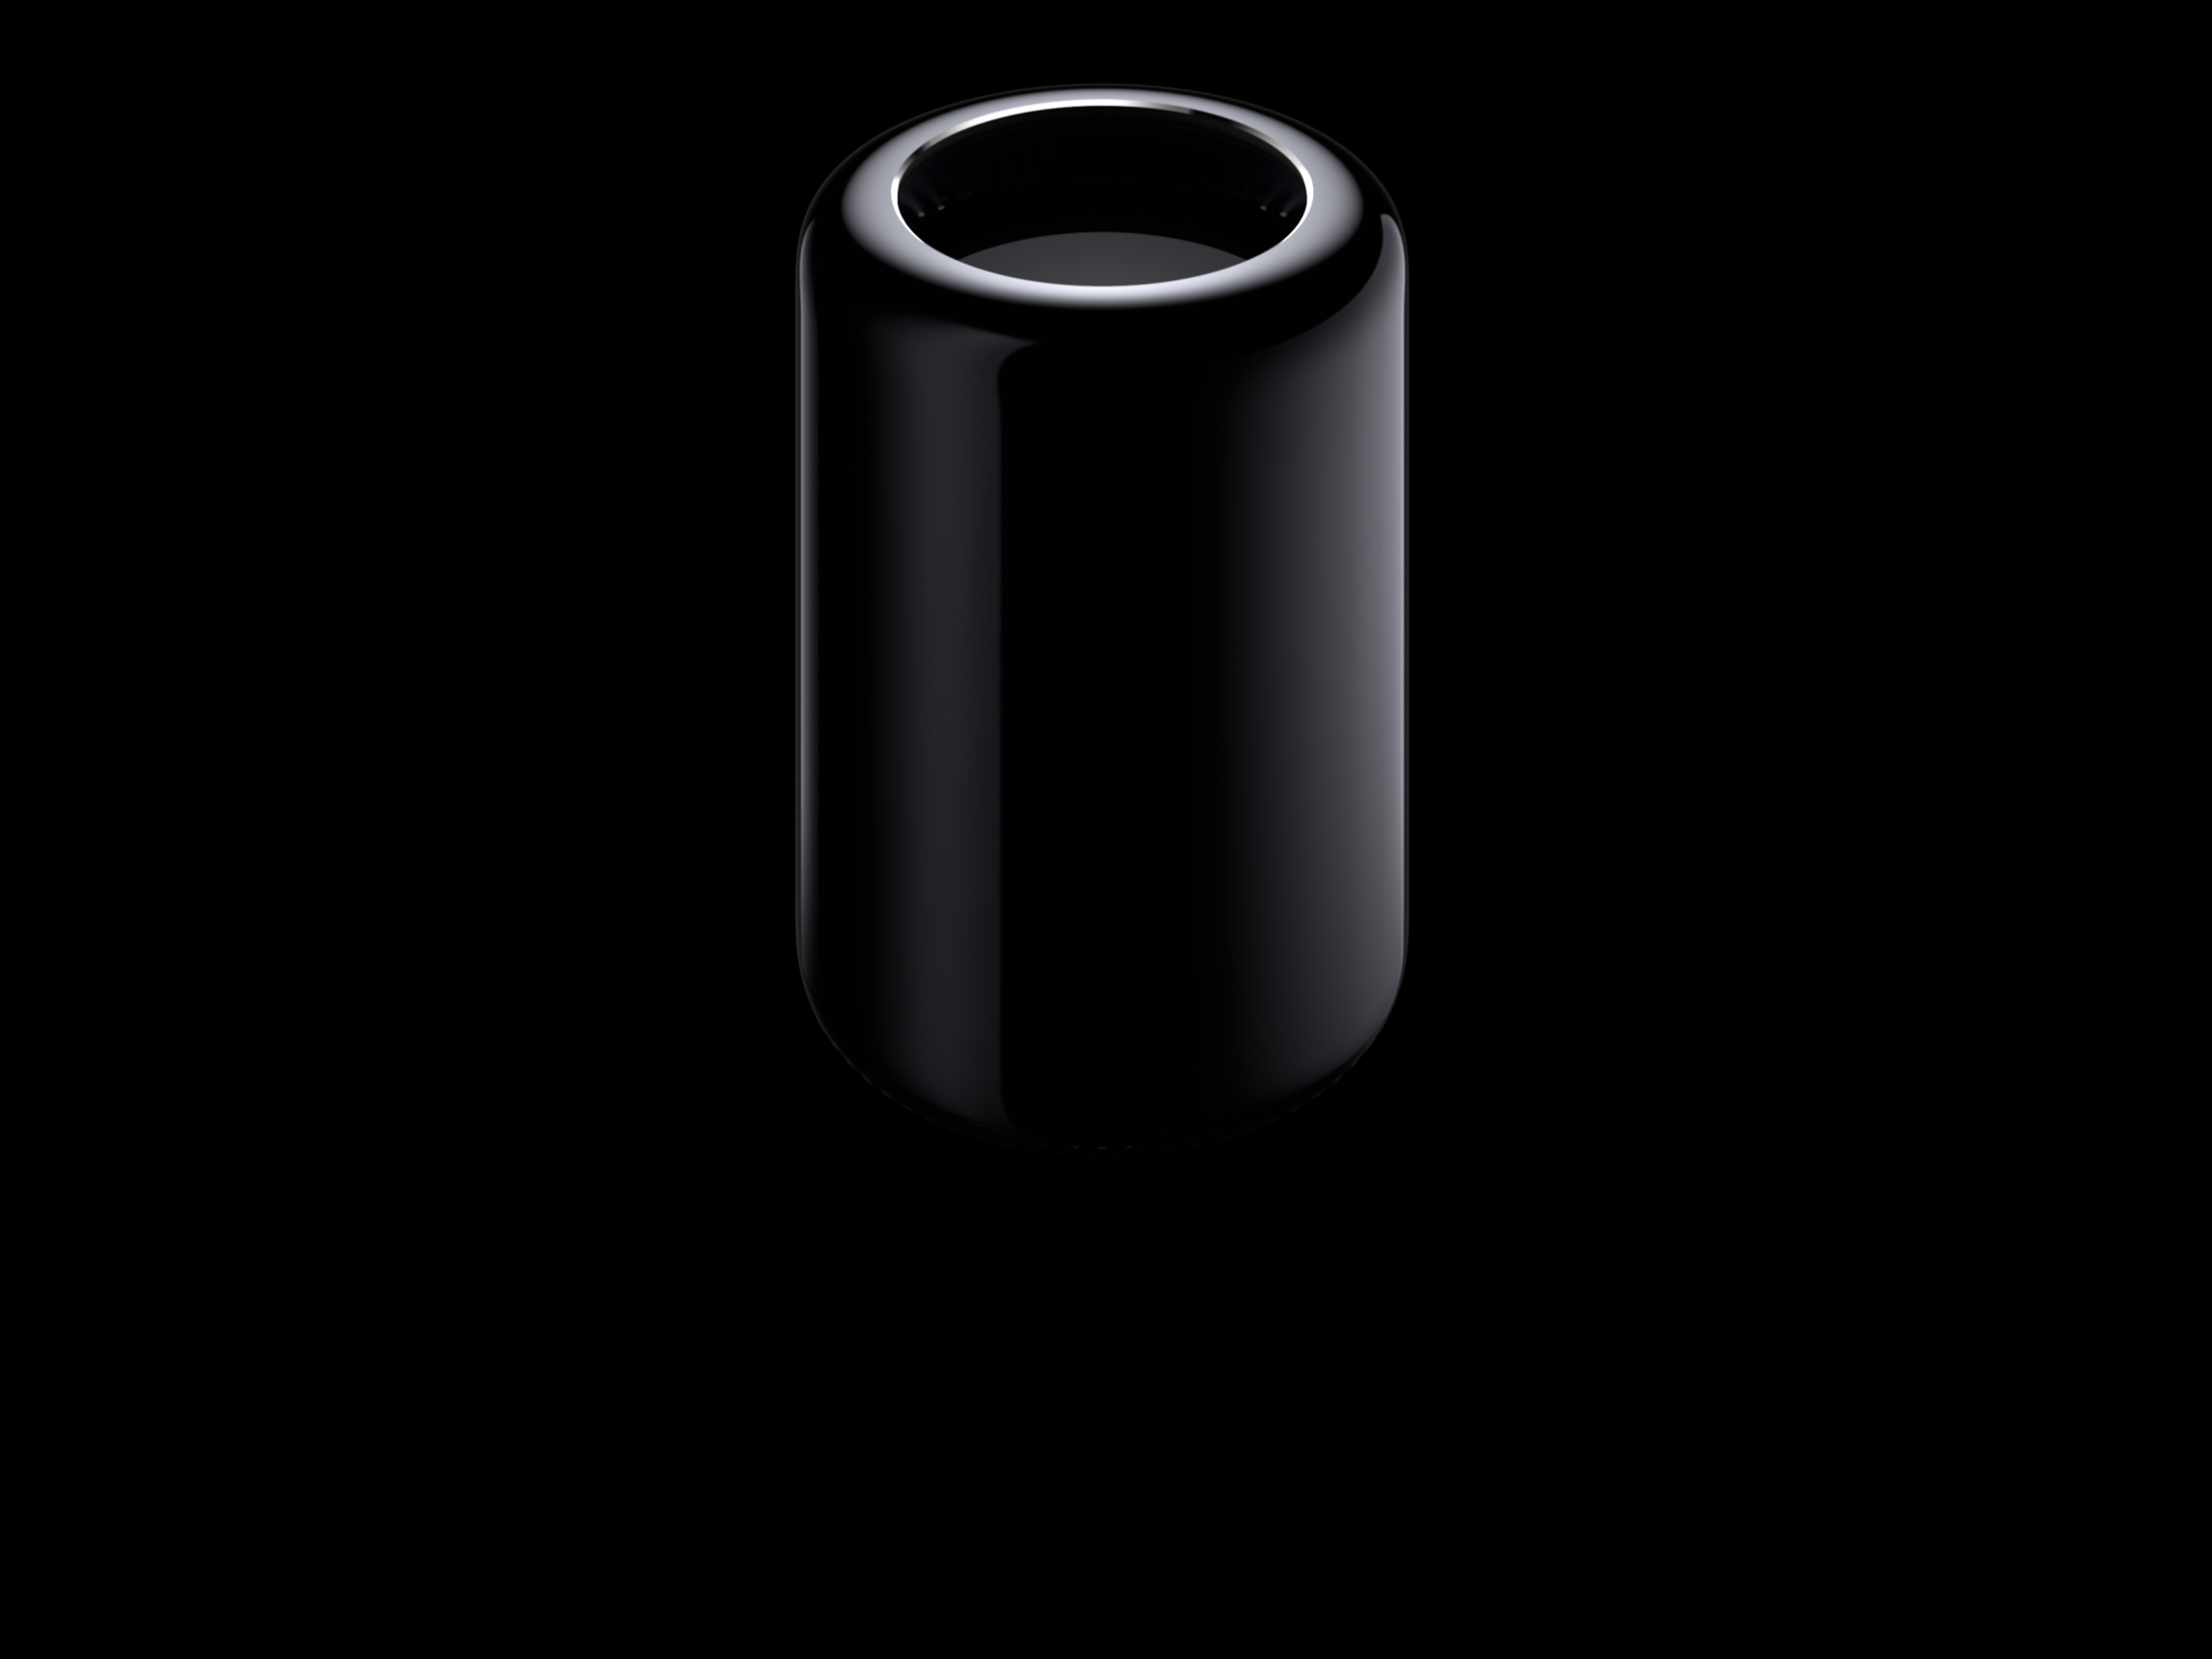 The newly redesigned Mac Pro